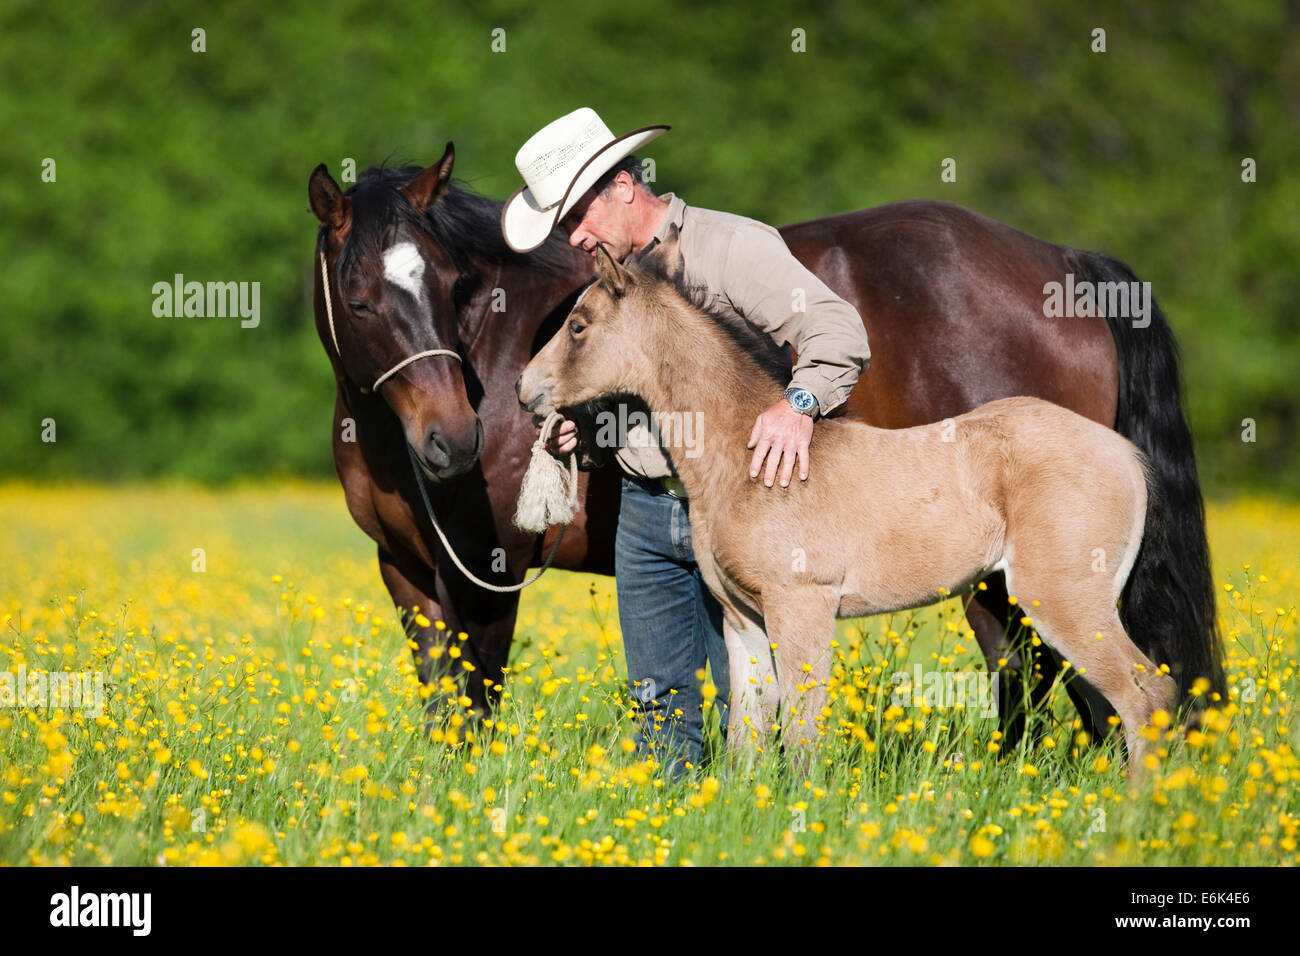 Cowboy with a bay and buckskin Quarter Horse, mare and foal, on a flower meadow, North Tyrol, Austria - Stock Image